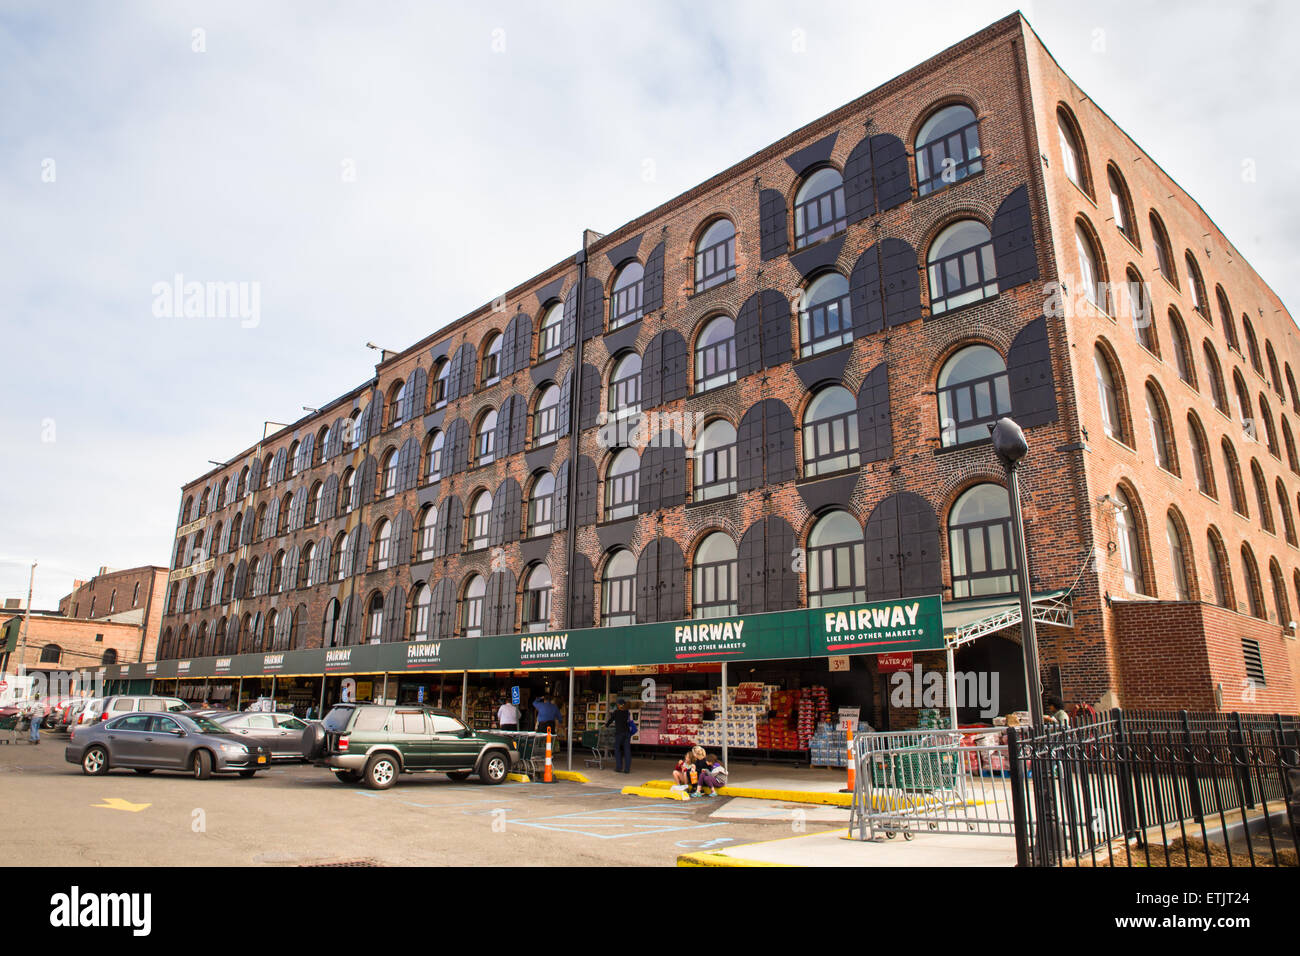 Red Hook, Brooklyn, New York City - June 6, 2015:  Landmark Fairway supermarket seen in Red Hook Brooklyn - Stock Image